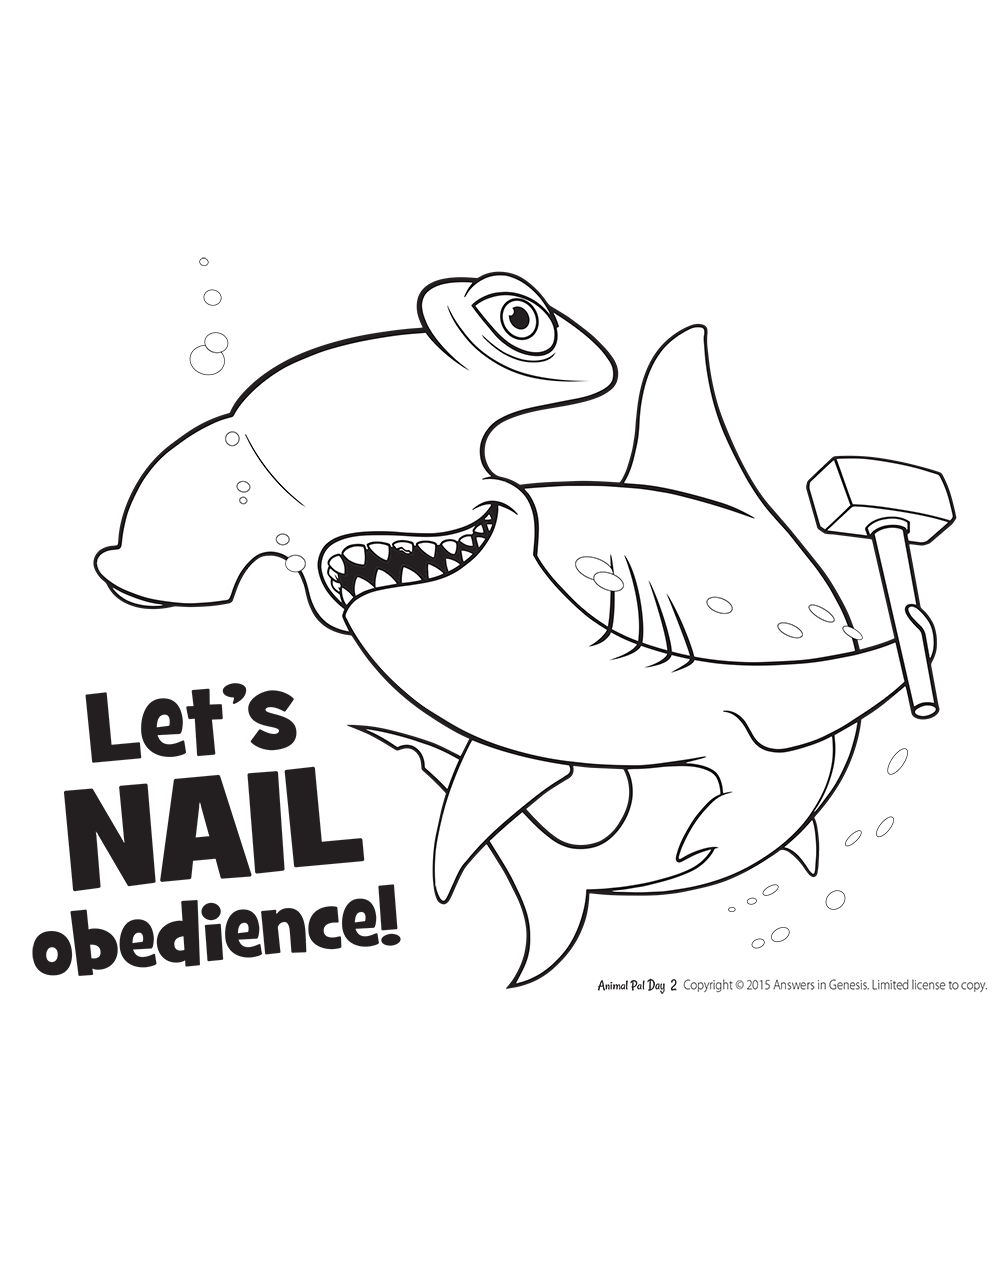 Nail Obedience